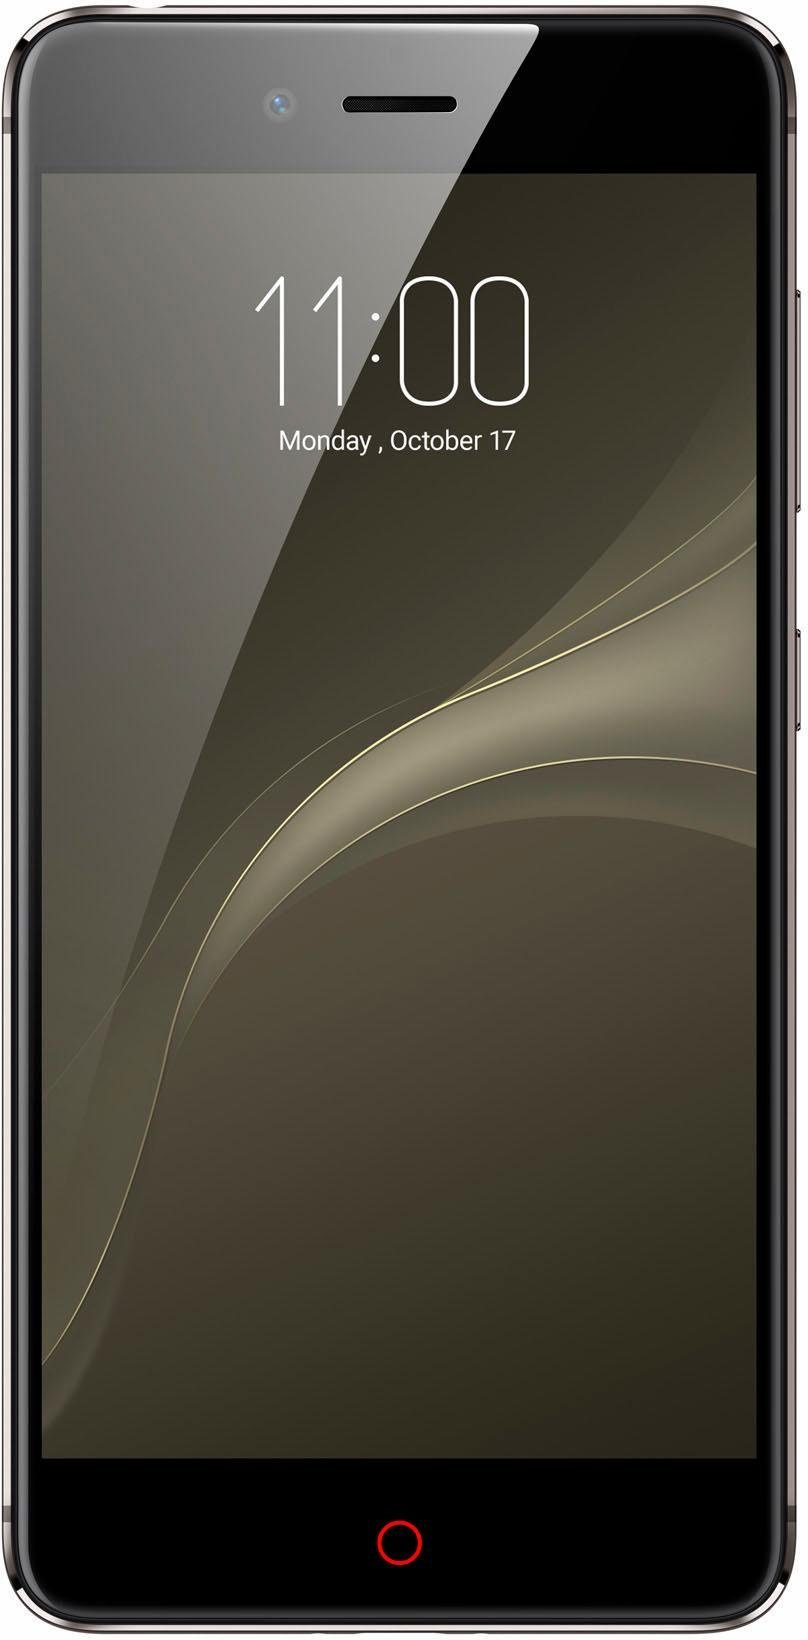 Nubia Z11 Mini S Smartphone, 13,2 cm (5,2 Zoll) Display, LTE (4G), Android 6.0 (Marshmallow)